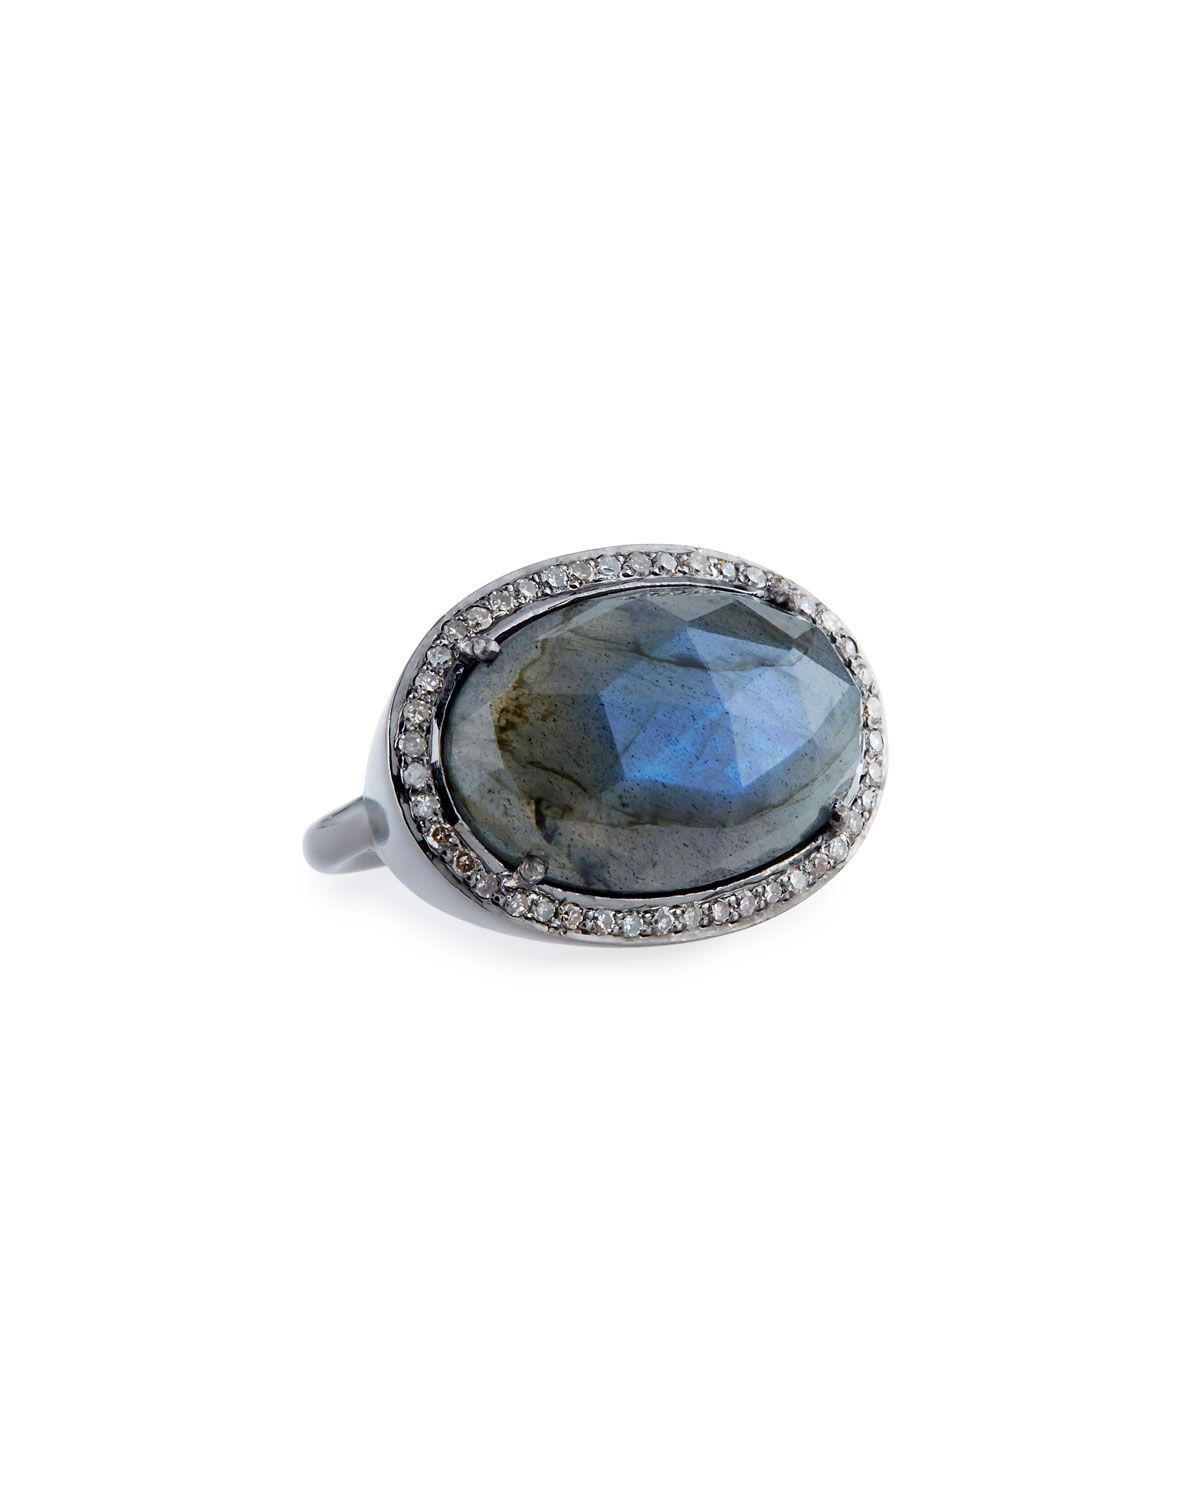 Sheryl Lowe Labradorite Ring with Diamonds, Size 7